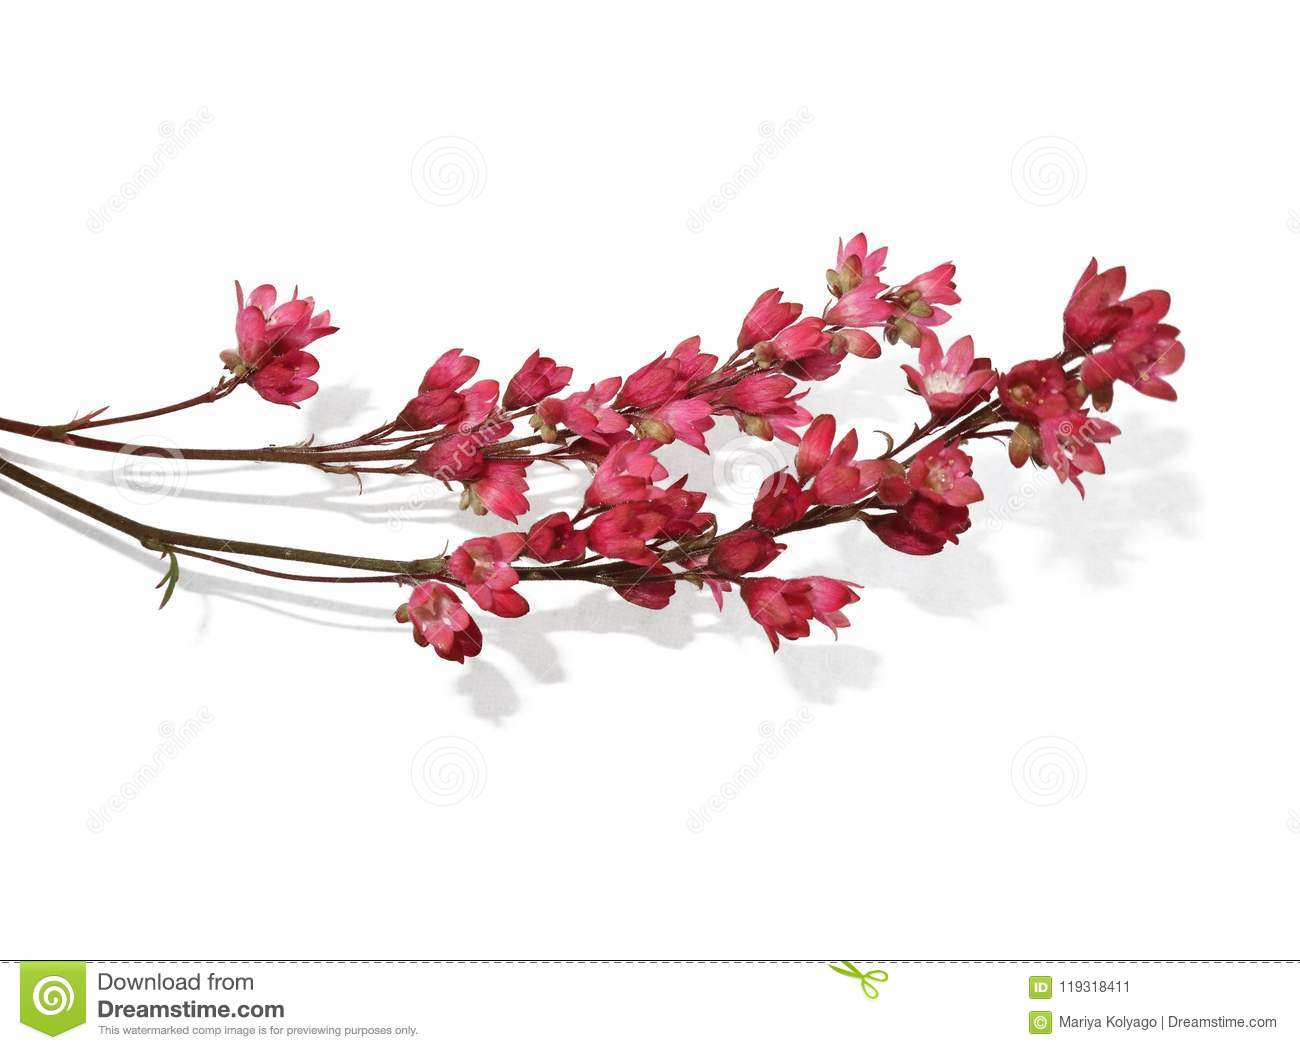 Sprig Of Small Pink Flowers On A White Background Stock Image